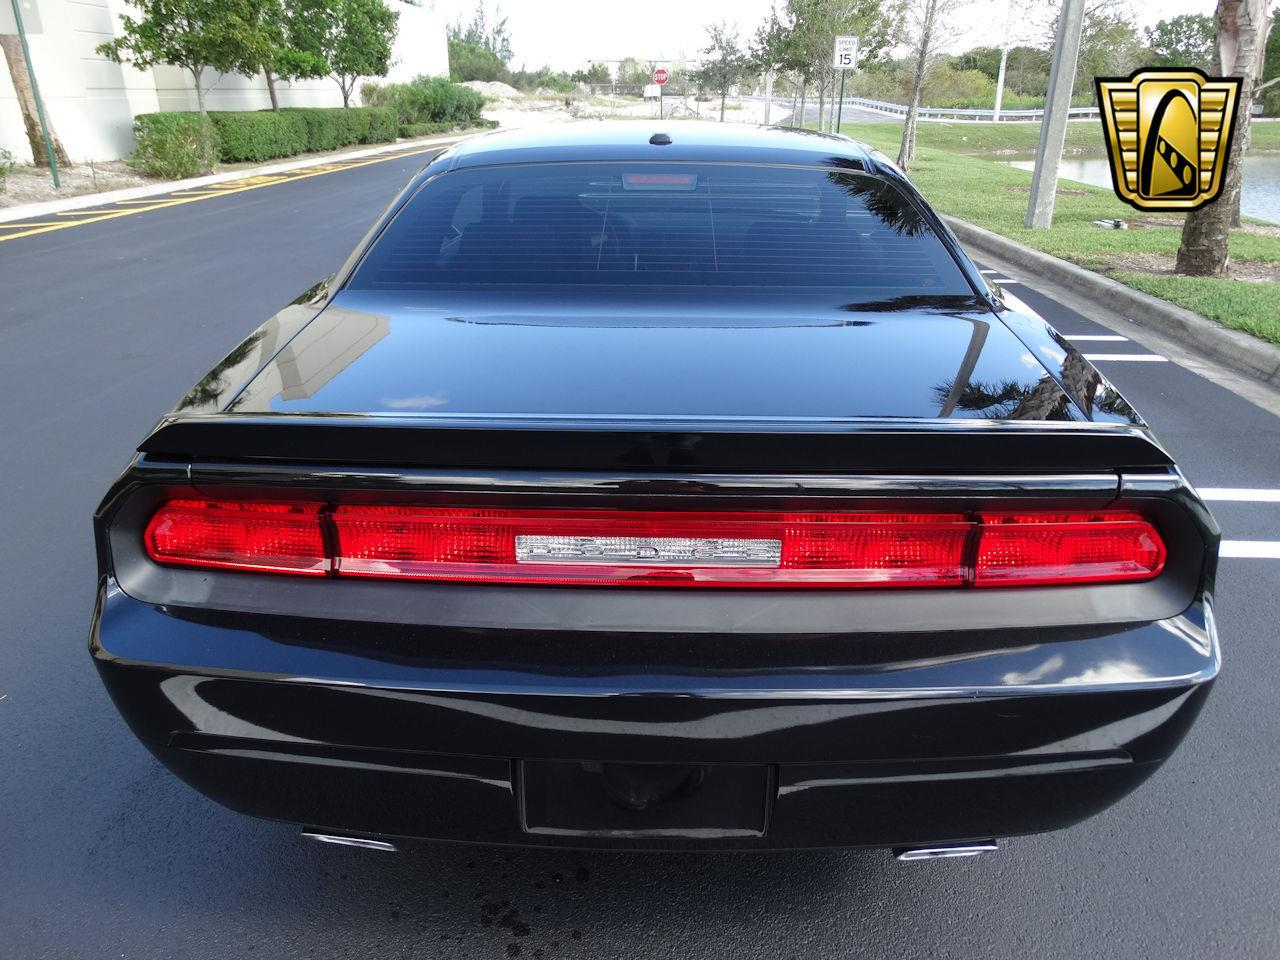 Large Picture of '09 Dodge Challenger located in Coral Springs Florida Offered by Gateway Classic Cars - Fort Lauderdale - MCFB